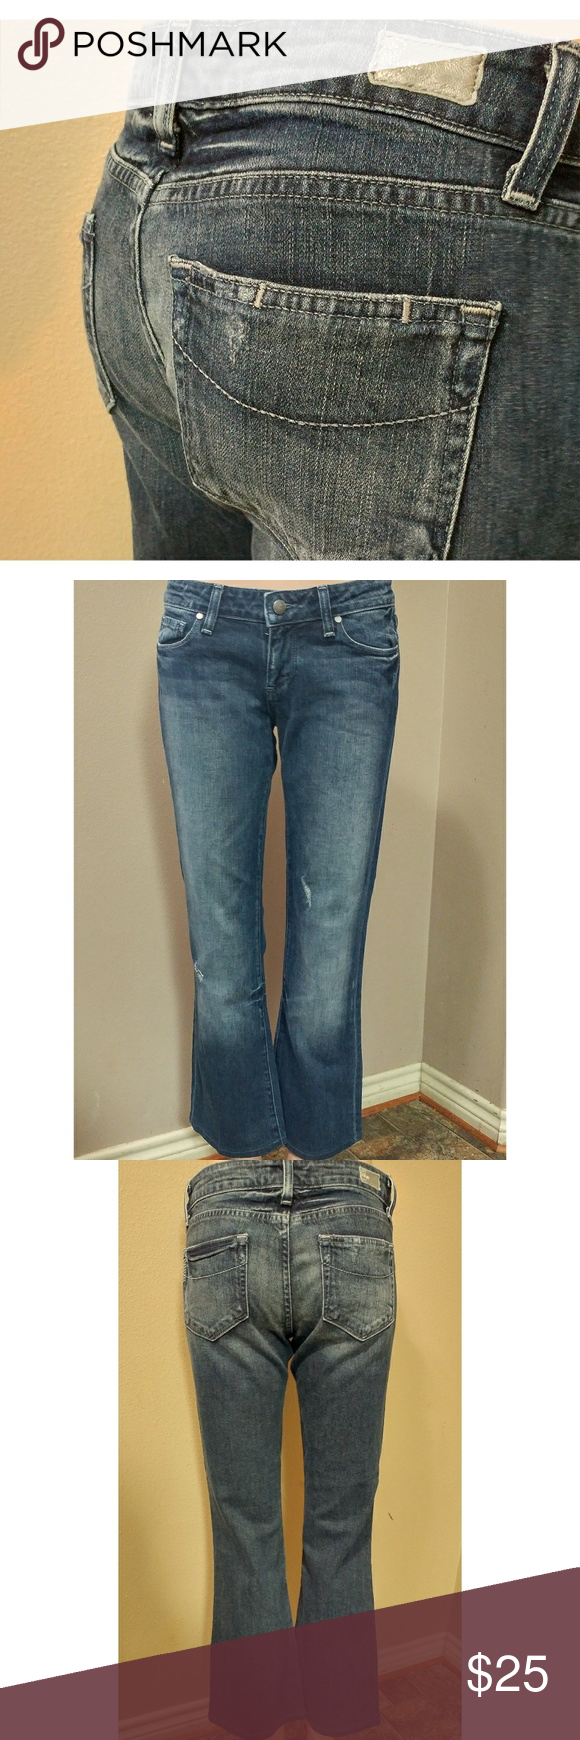 """Paige 27x28 Jeans Paige Laurel canyon distressed jeans size 27 with a 28"""" inseam. In great preowned condition. Waist flat is 15"""" and rise is 8"""" Paige Jeans Jeans Boot Cut"""